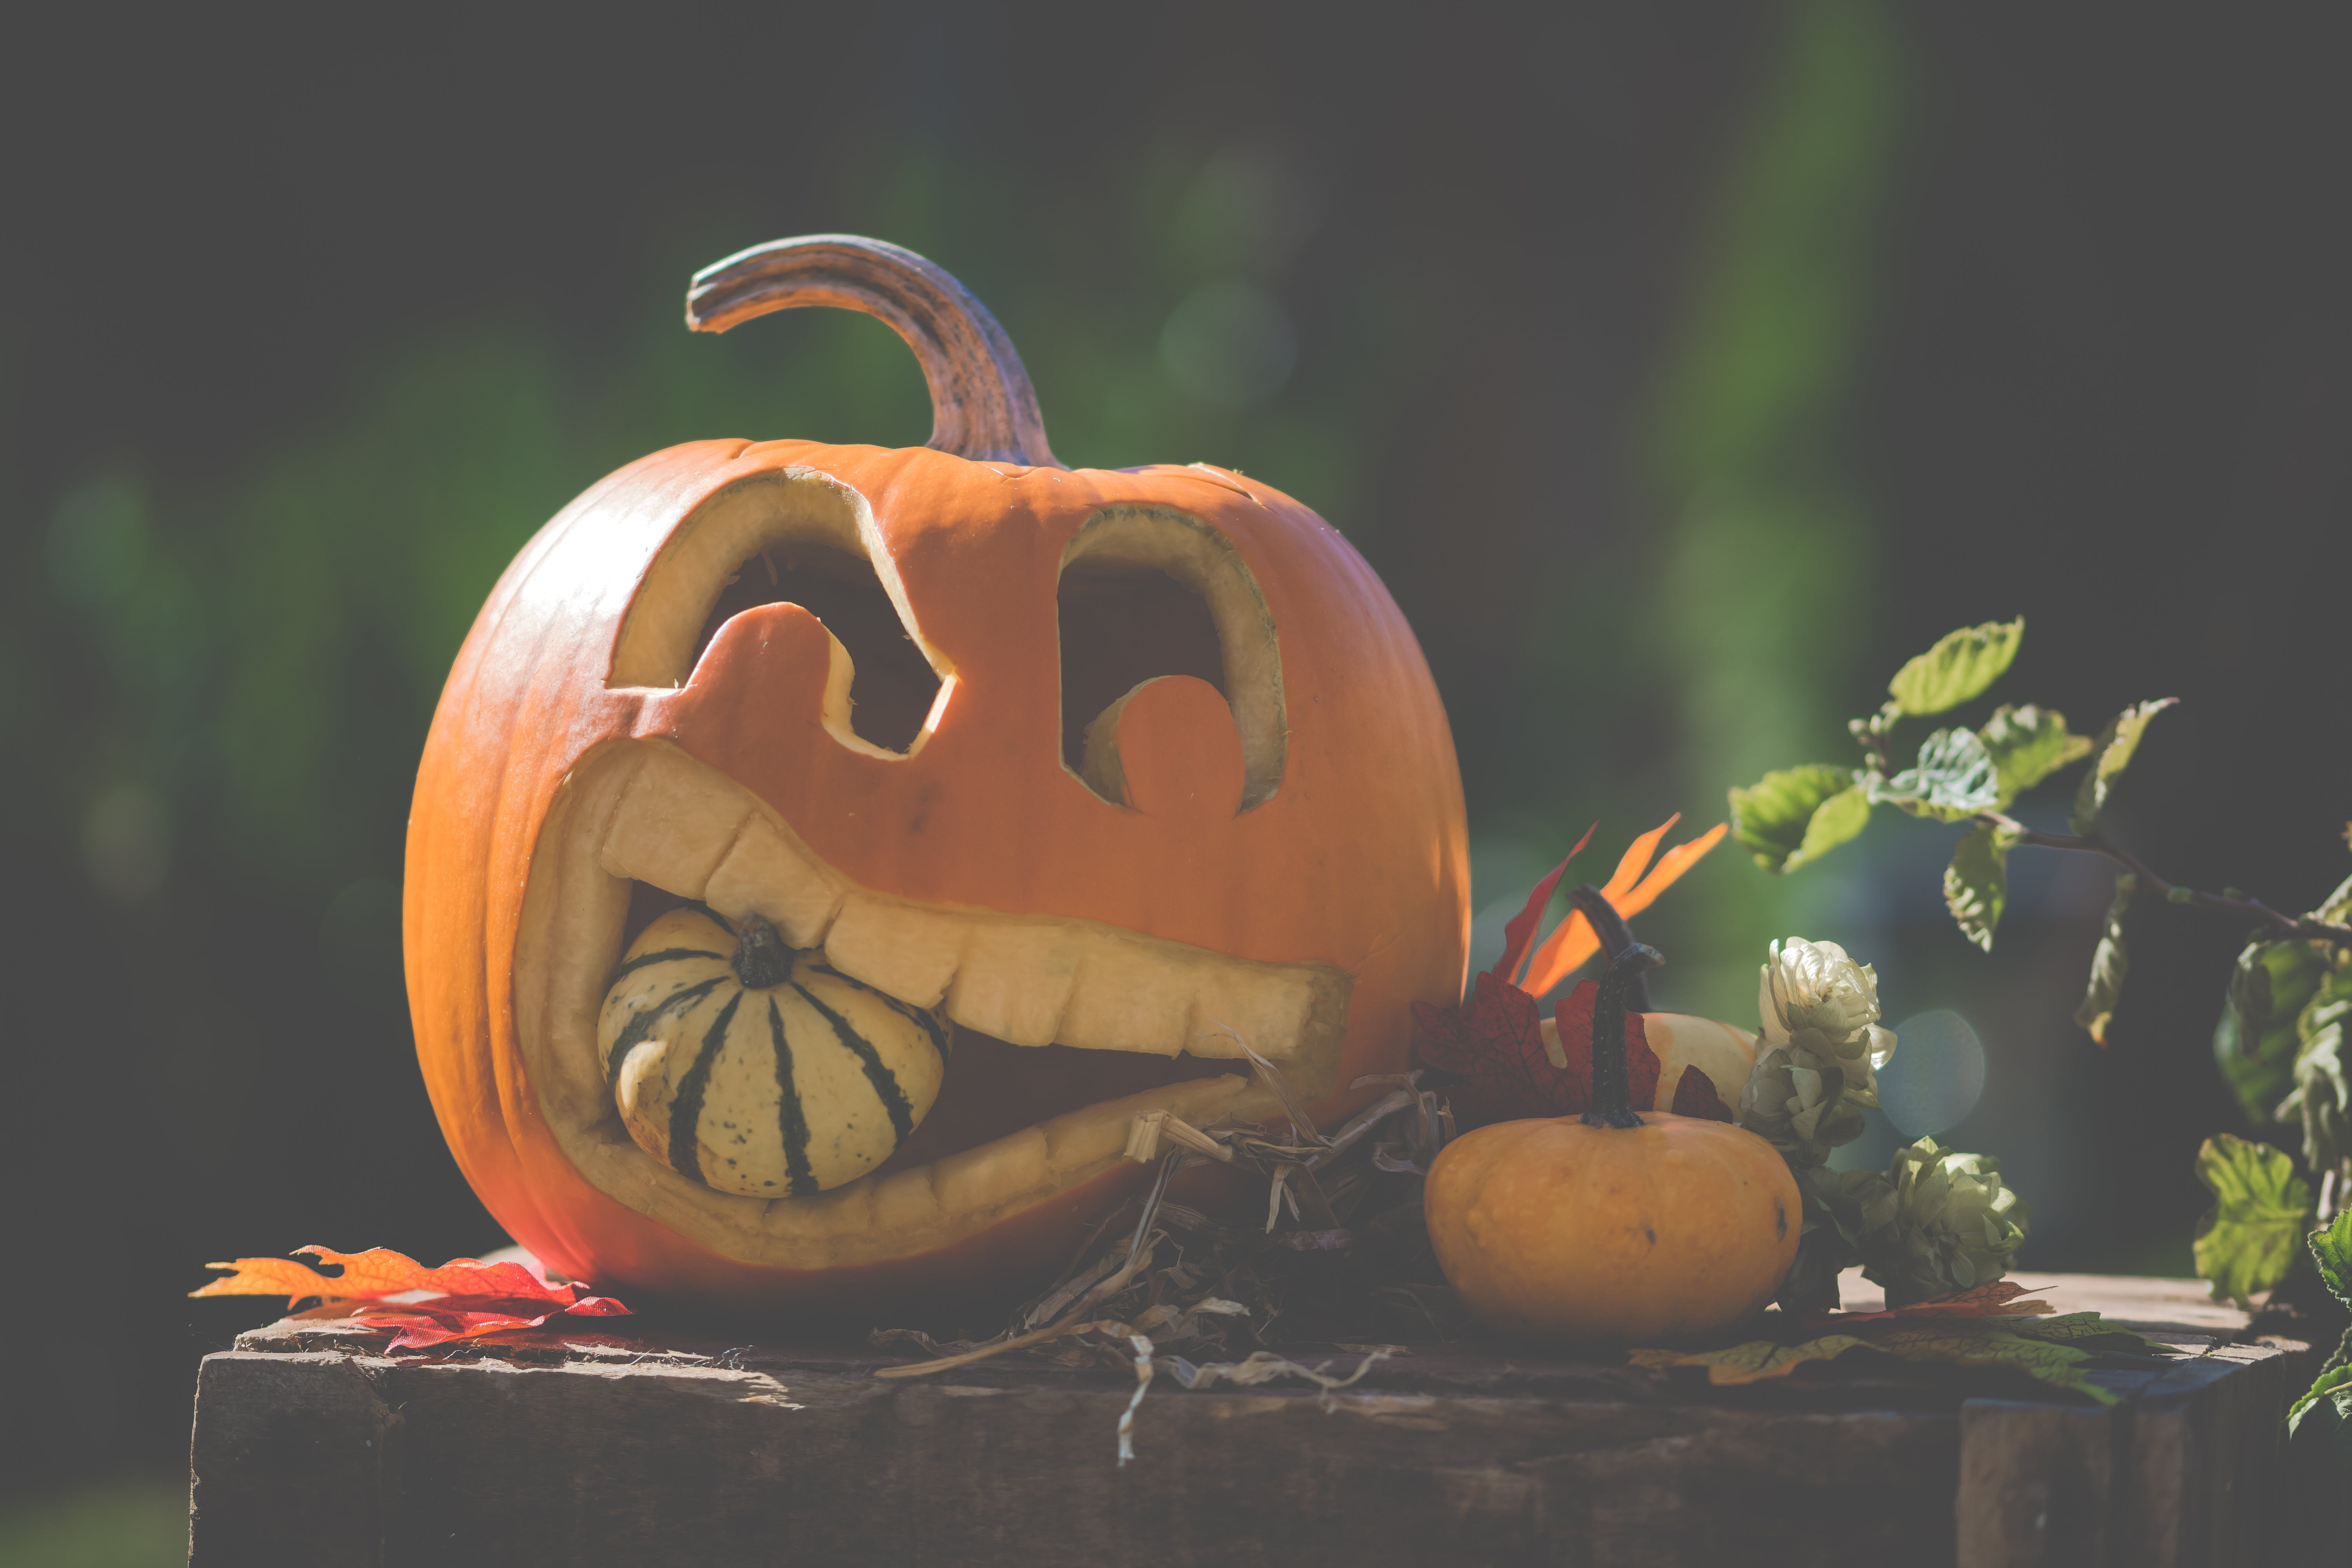 Jack O' Lantern On Top Of Wooden Surface